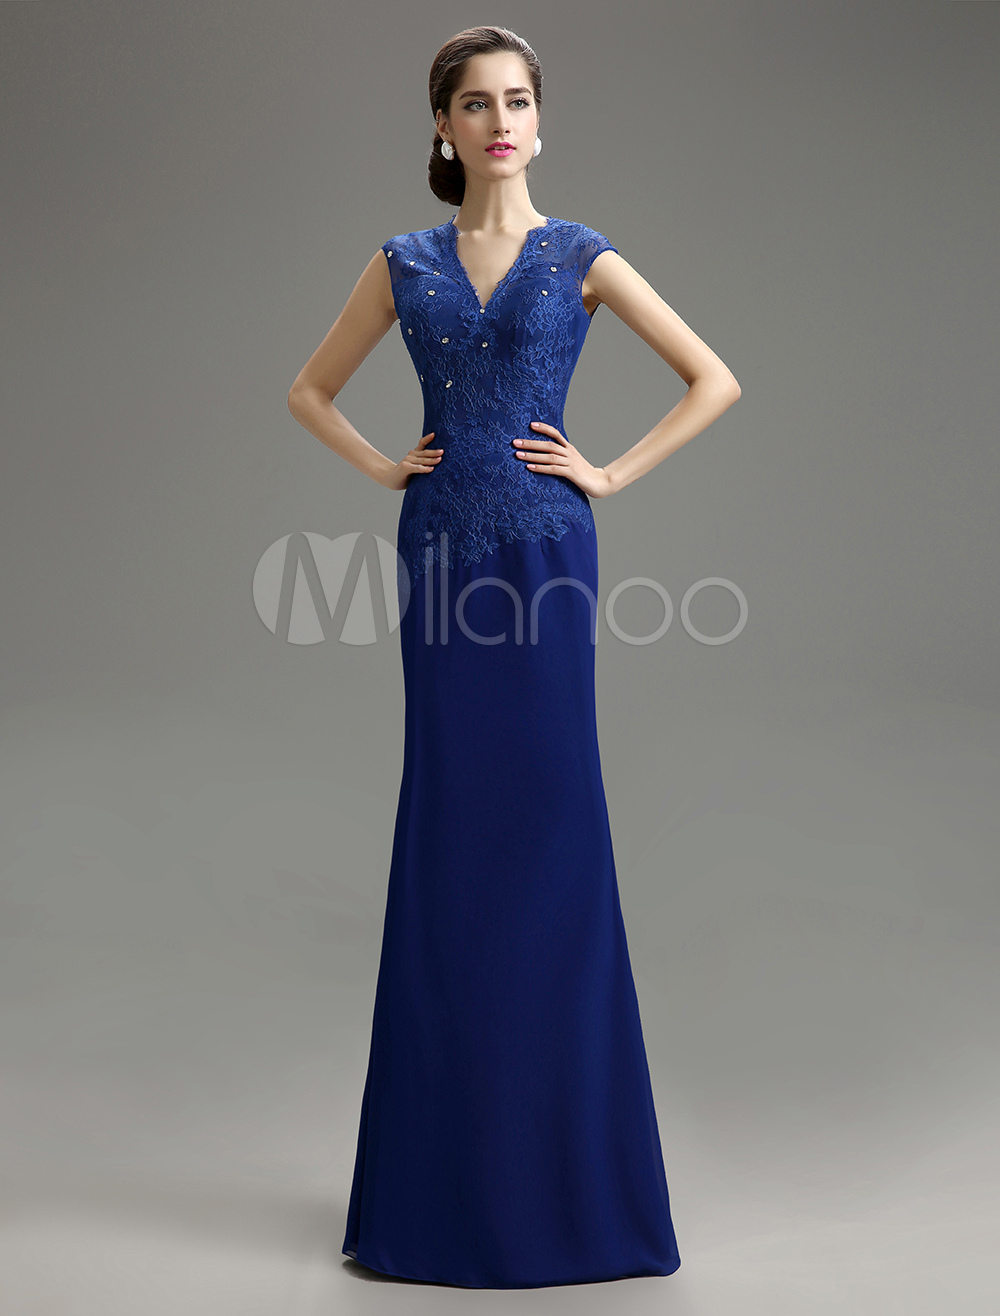 Royal Blue Mermaid V-Neck Lace Chiffon Mother of the Bride Dress